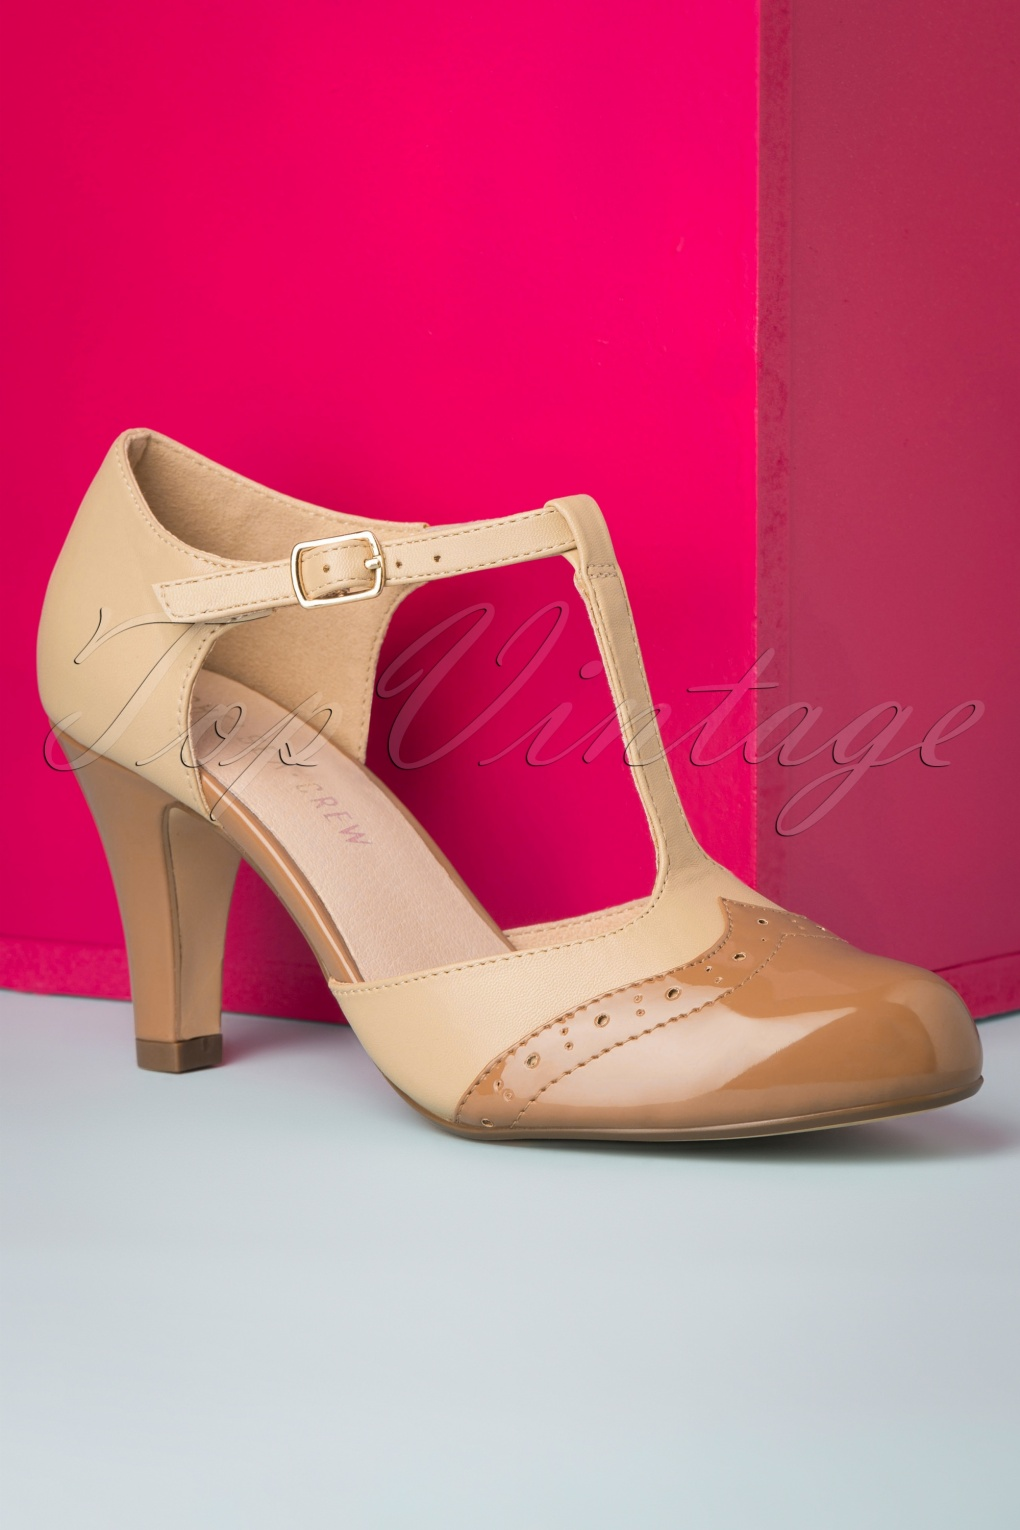 Vintage Heels, Retro Heels, Pumps, Shoes 20s Gatsby T-Strap Pumps in Tan and Nude £73.35 AT vintagedancer.com